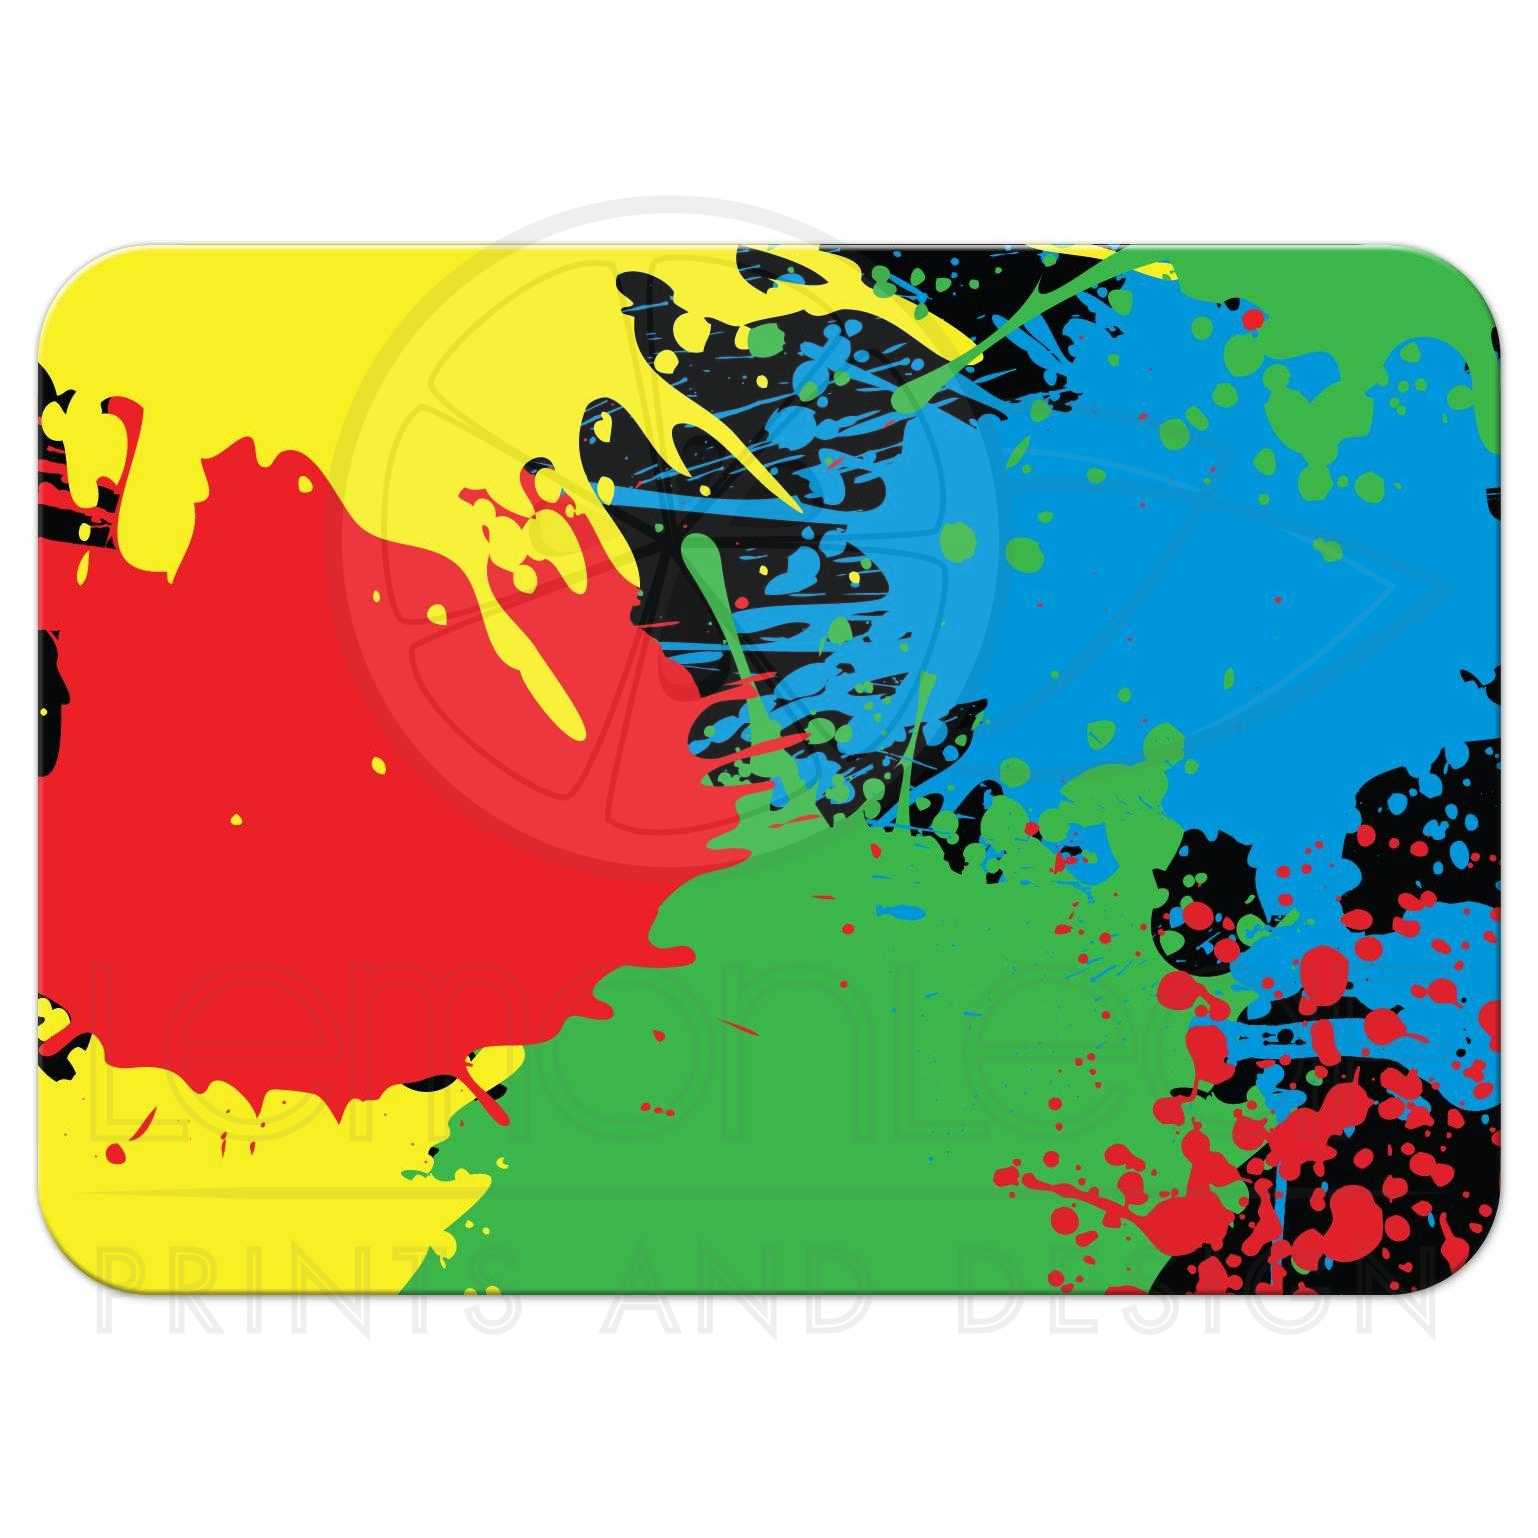 Paintball Party Bar Mitzvah Reply RSVP Card